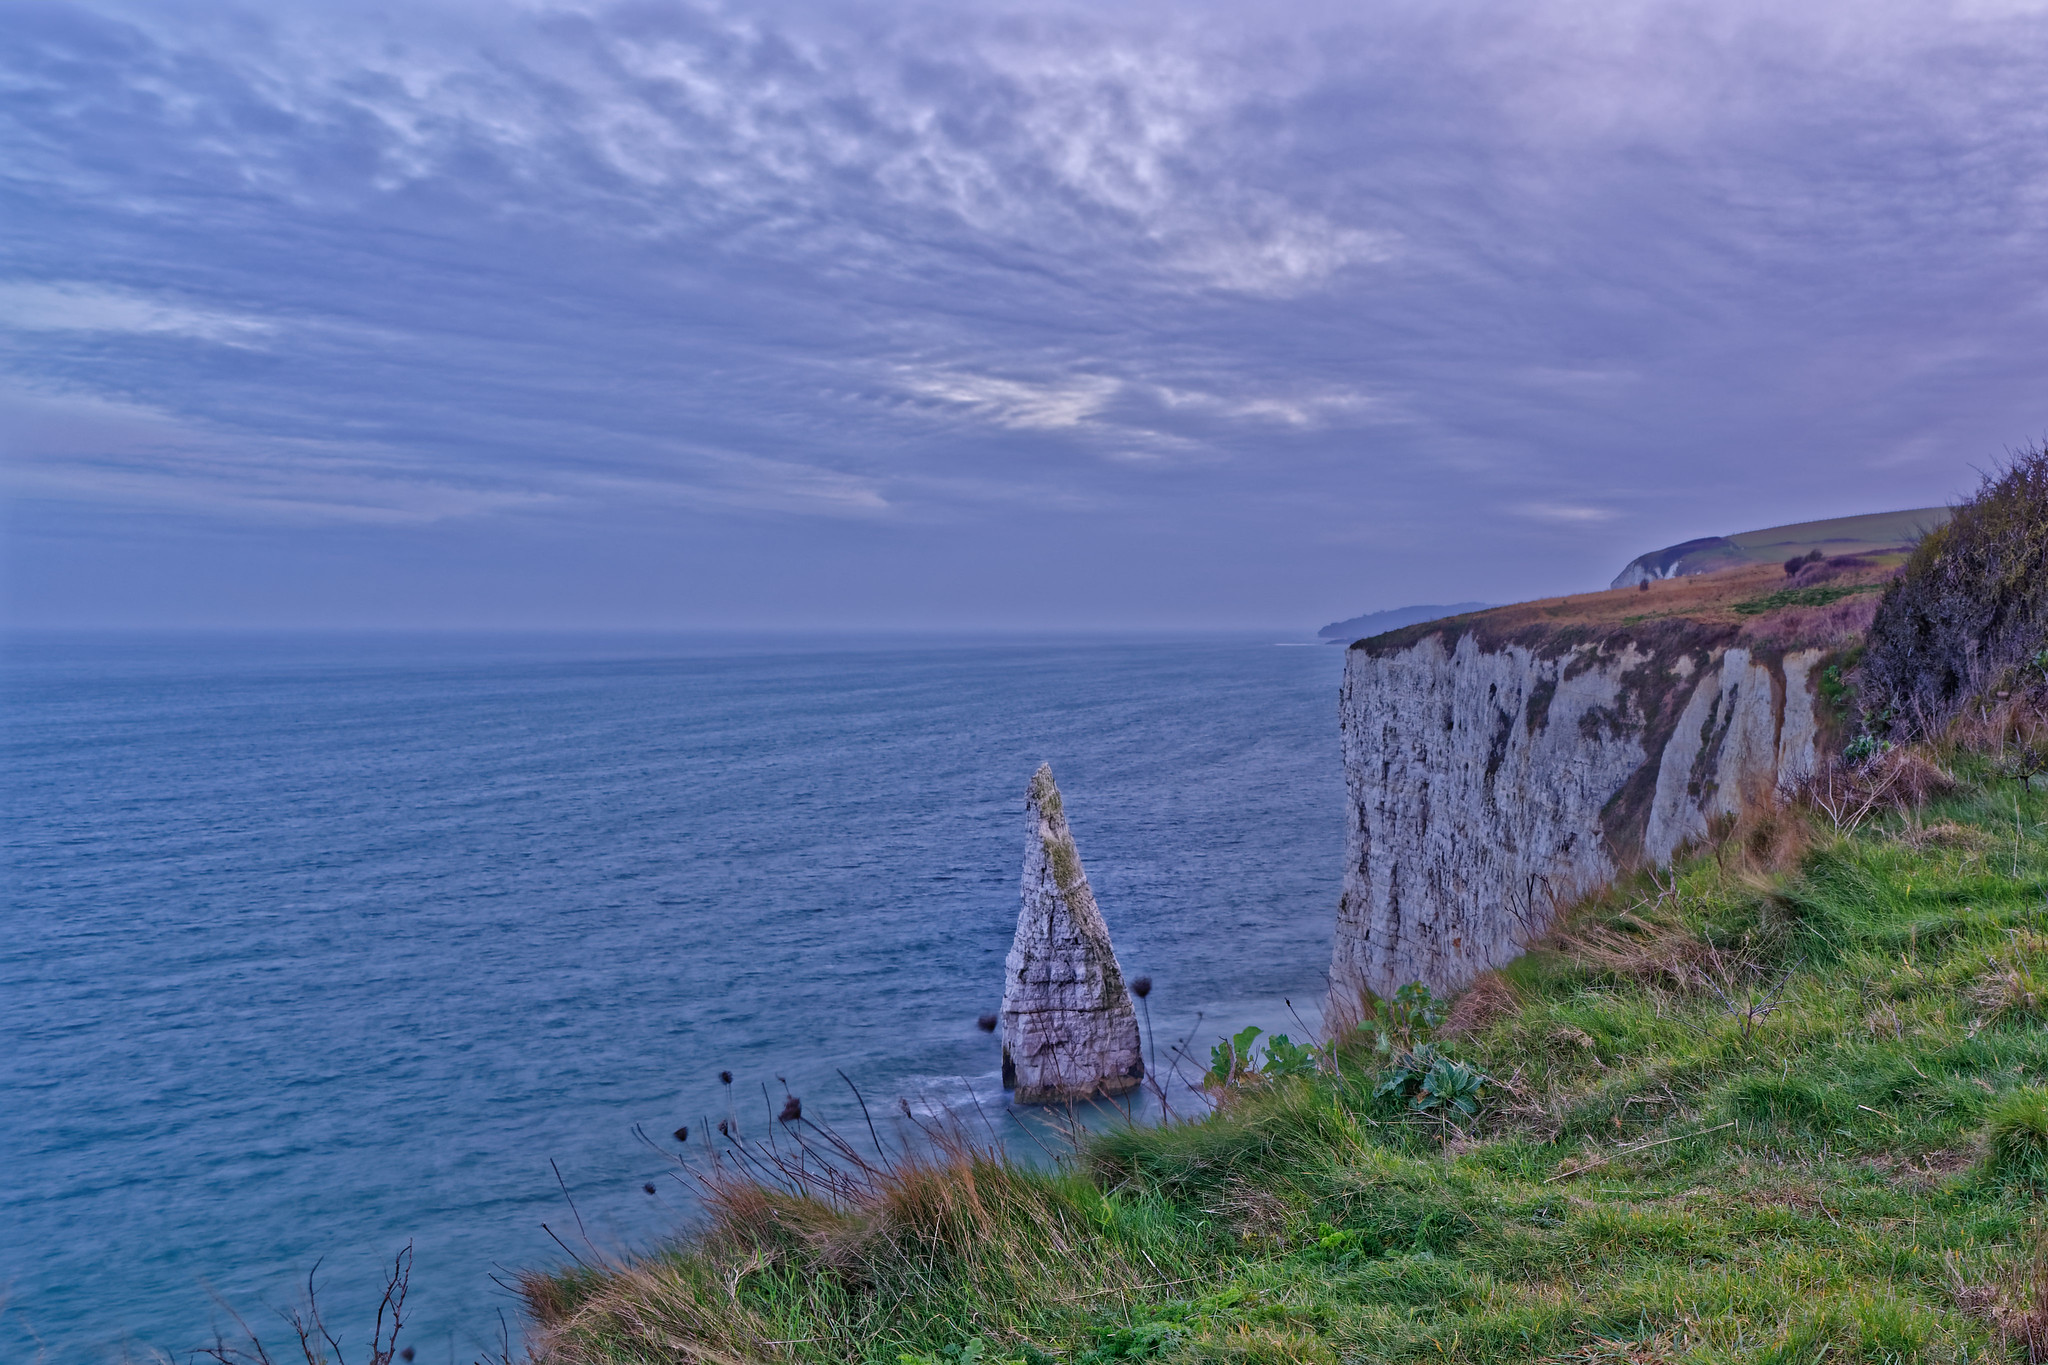 One more from my visit to Old Harry's Rock here in Dorset